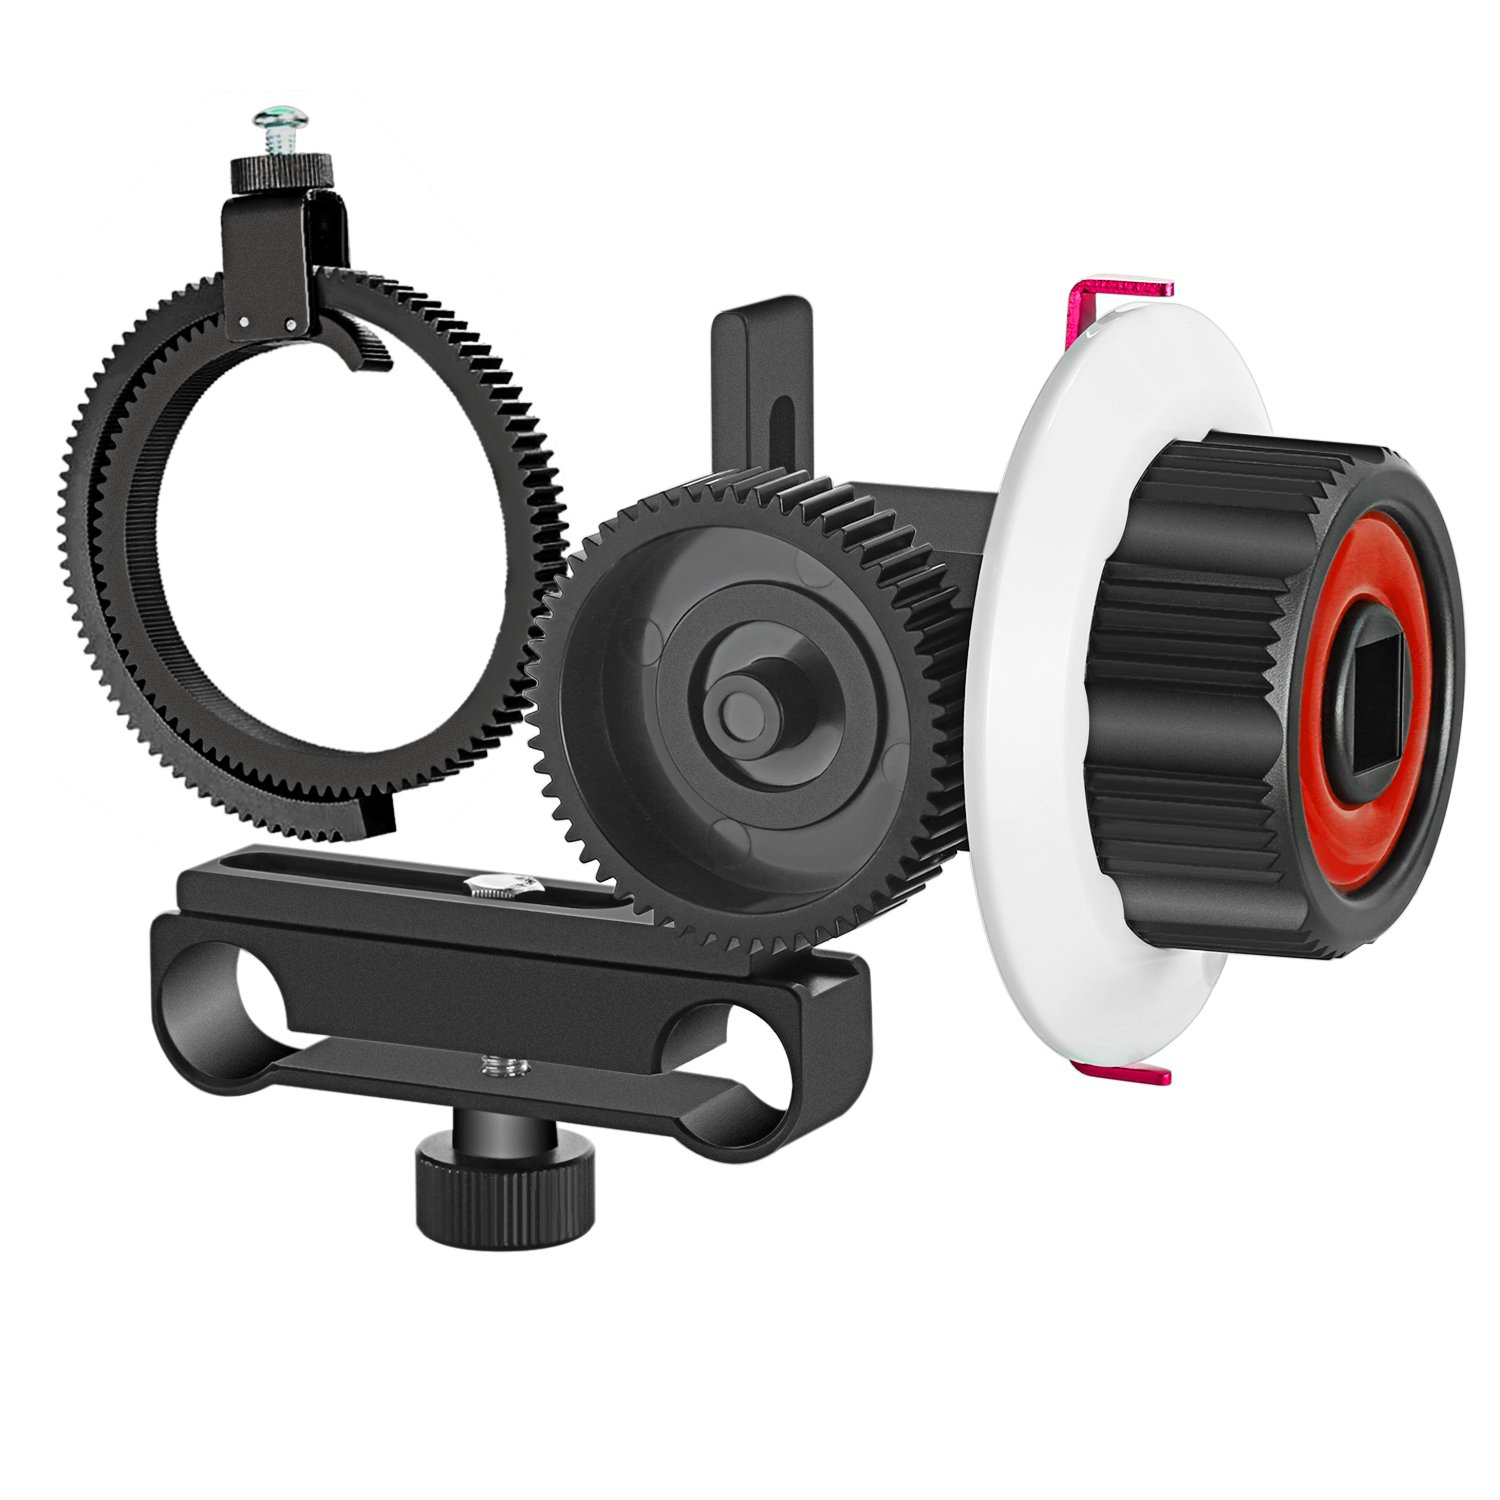 Fotga DP500III Follow Focus 15mm-19mm Rail Rod Clamp Filming System Camera Gears Kits for DSLR Cameras Camcorders Photography